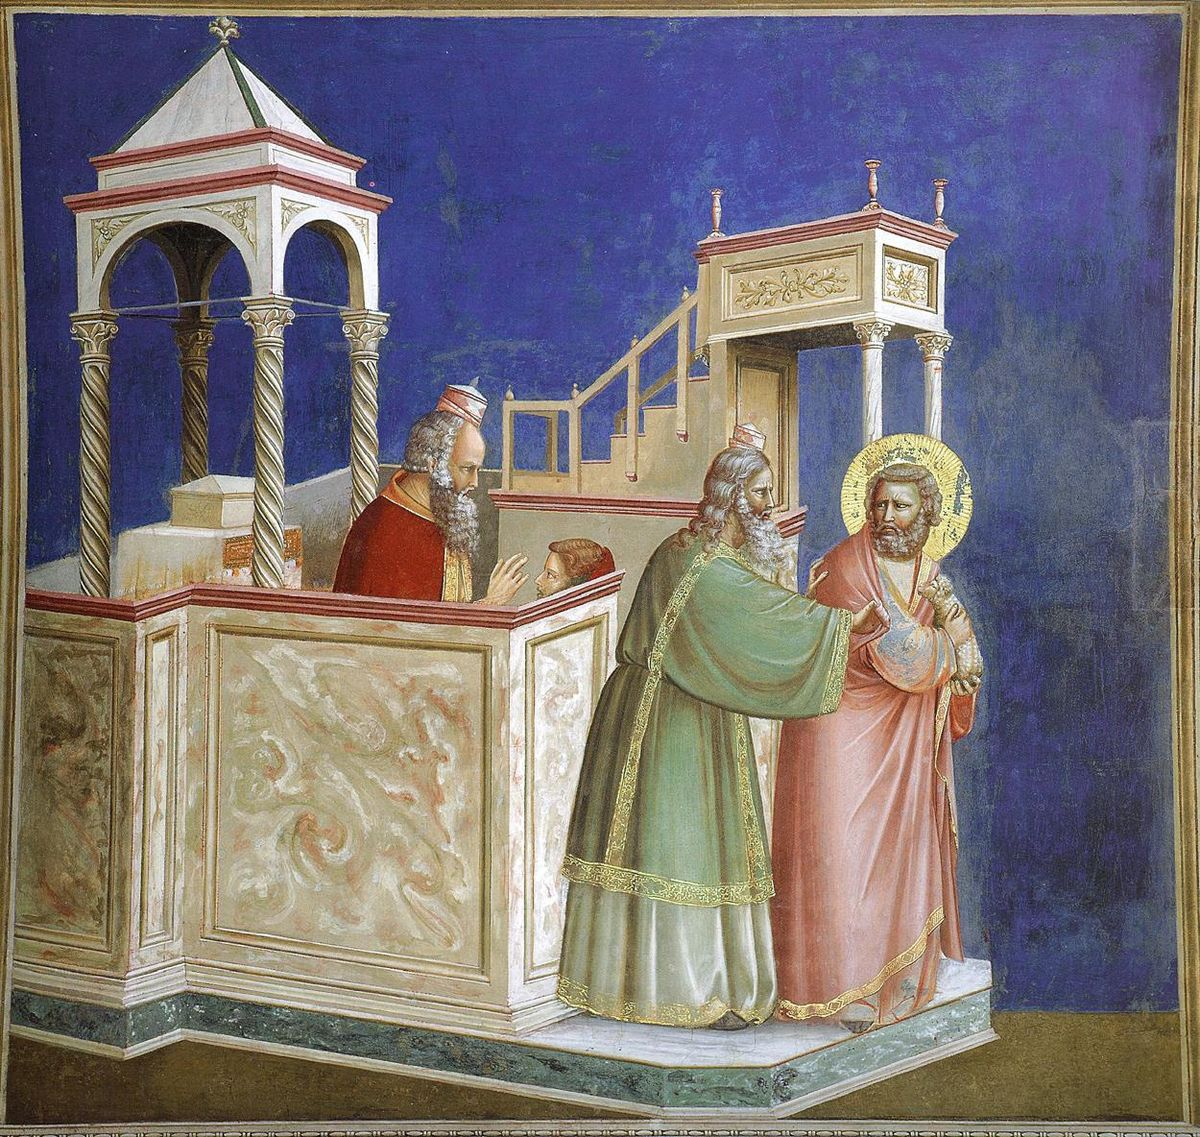 """The Expulsion of Joachim from the Temple"" by Giotto di Bondone   Arena (Scrovegni) Chapel, Padua, Italy, c. 1305, Fresco, (approx. 4x5ft) by Giotto (Giotto di Bondone . 1267 – January 8, 1337) The Italian painter and architect from Florence painted the interior of the chapel with a cycle of 37 images of which this is one. This is his most influential work and considered to be an important masterpiece of Western Art. Giotto was ""the most sovereign master of painting in his time, who drew all his figures and their postures according to nature"", to quote a famous chronicler of that period.  This is still considered the Gothic period yet notice how well shaded and solid the figures look, moving away from Medieval flatness. Giotto was a pioneer in observing the human figure from life and depicting it with solid volume as if there is a real body underneath the clothing. Take note of the attempt at perspective in the architecture. The system of linear perspective had not been developed and Giotto is on his own as far as how to show architecture and delineate realistic space for his figures."